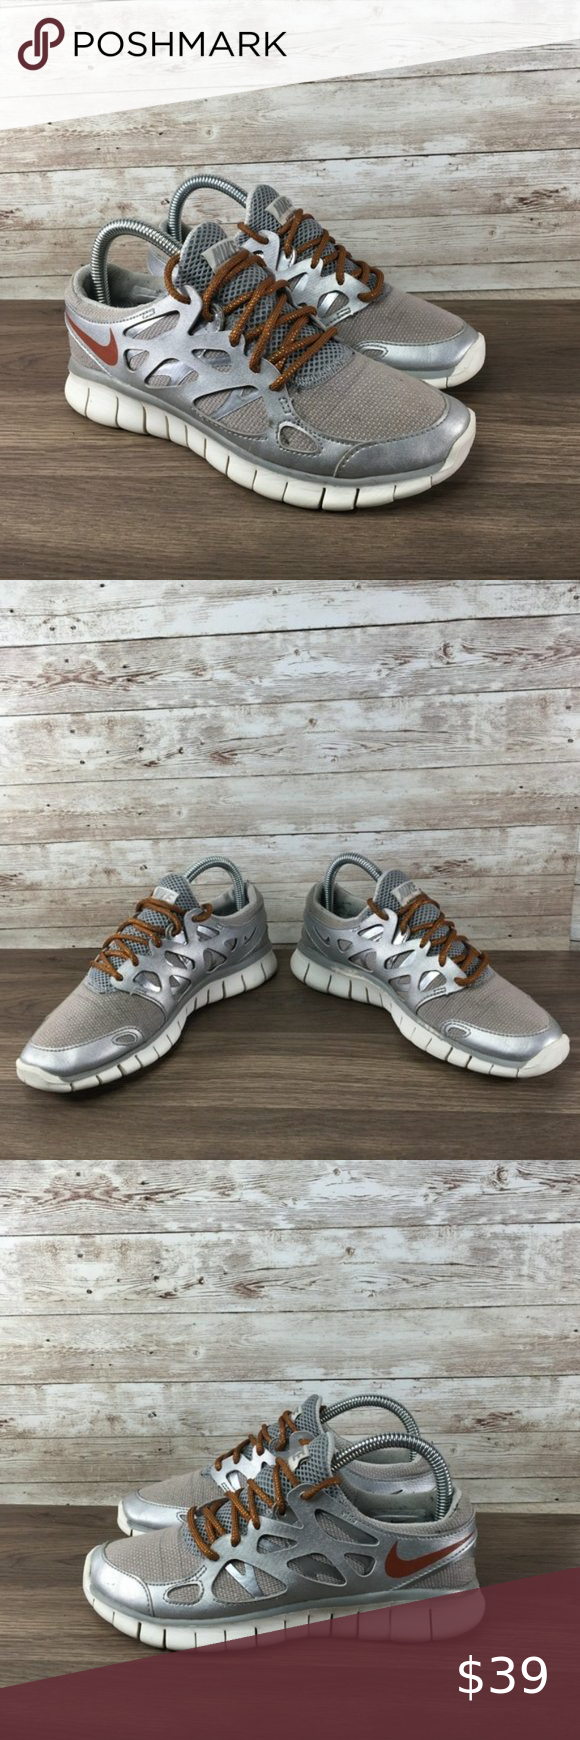 Nike Free Run 2 Womens 6.5 Athletic Silver Bronze Nike Free Run 2 Womens 6.5 Athletic Silver Bronze  Gently used. Smoke free. No box. We always carefully package and box ship immediately. Reach out with any questions!  Women's Size 6.5  Our inventory: 090819-09-R1(012820)  Pair in photos is the exact pair you are purchasing. Make sure to follow us. We post a ton of shoes and offer bundle pricing. Nike Shoes Athletic Shoes